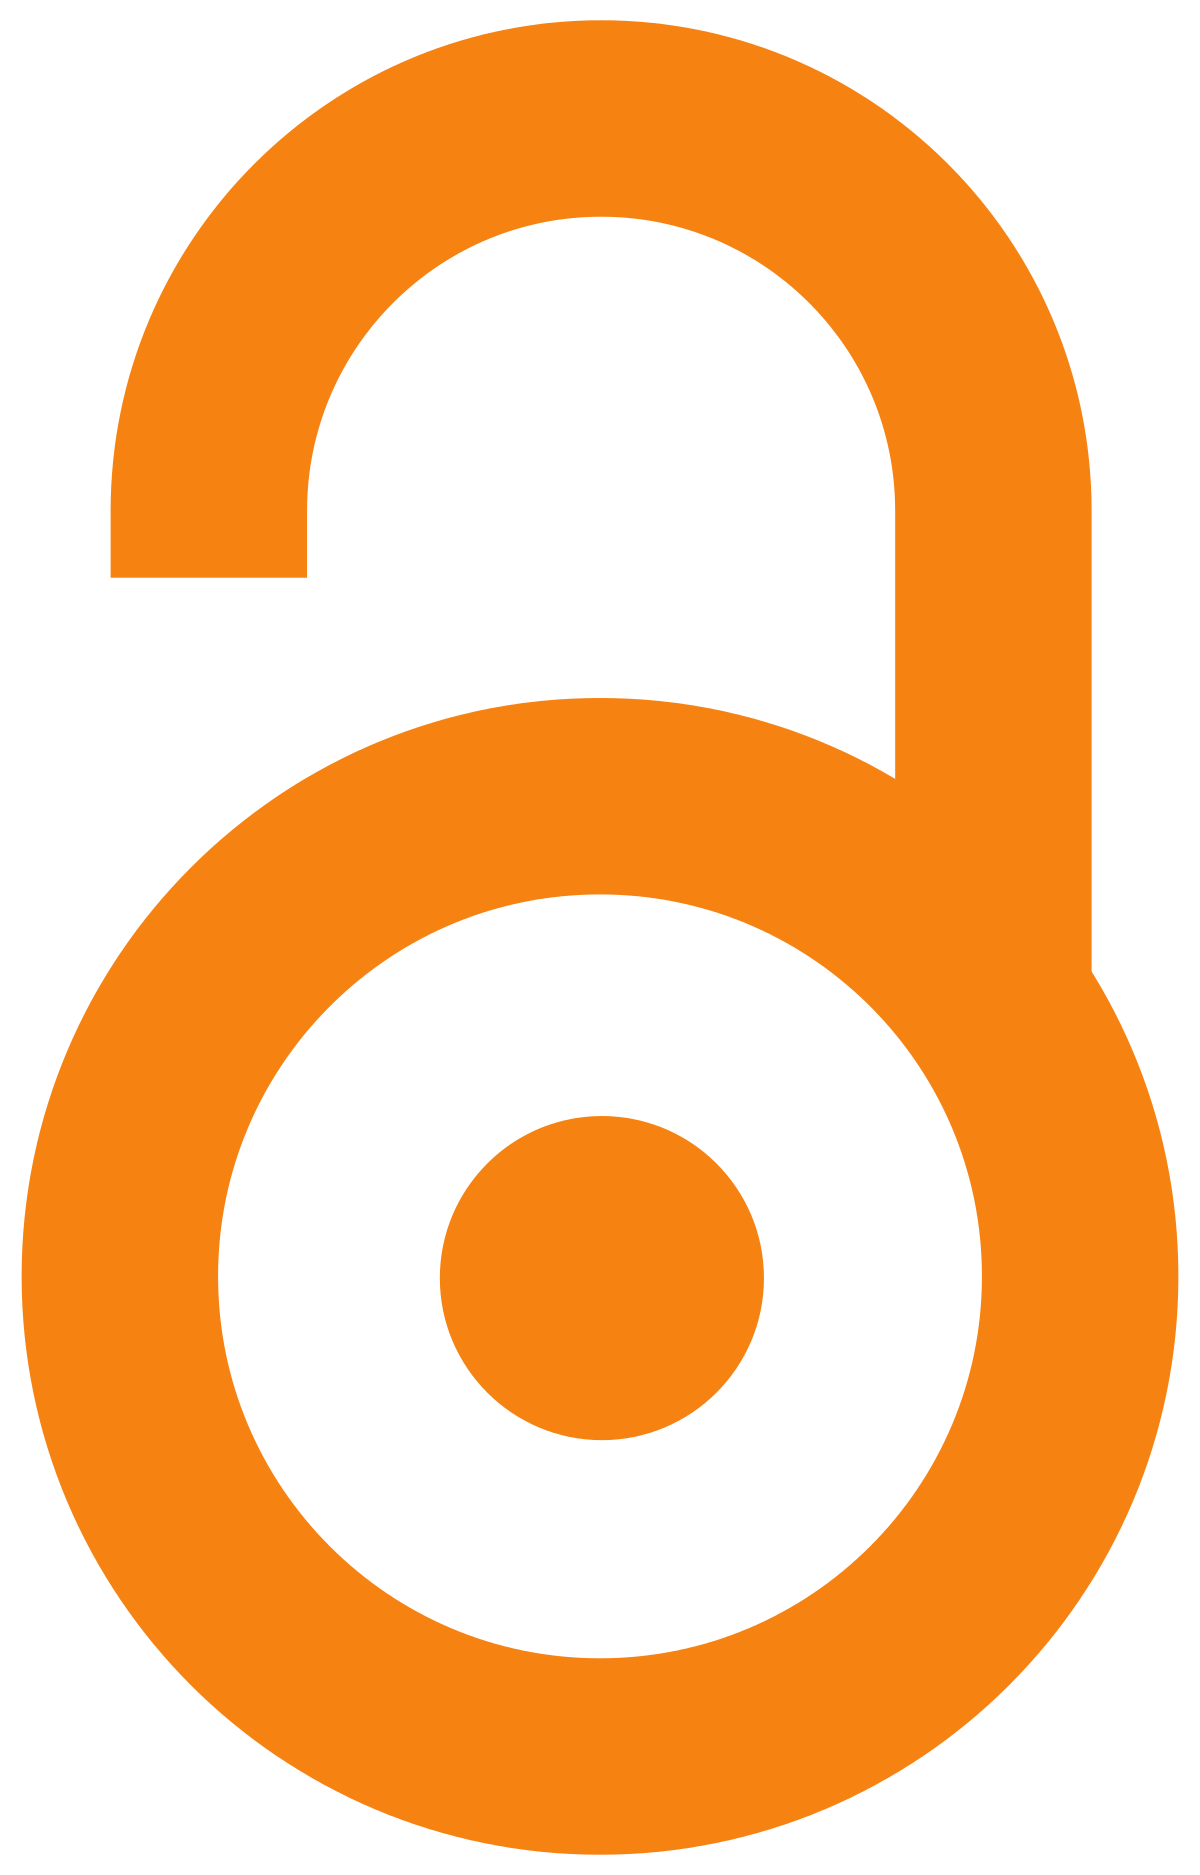 Open access unlocked logo.